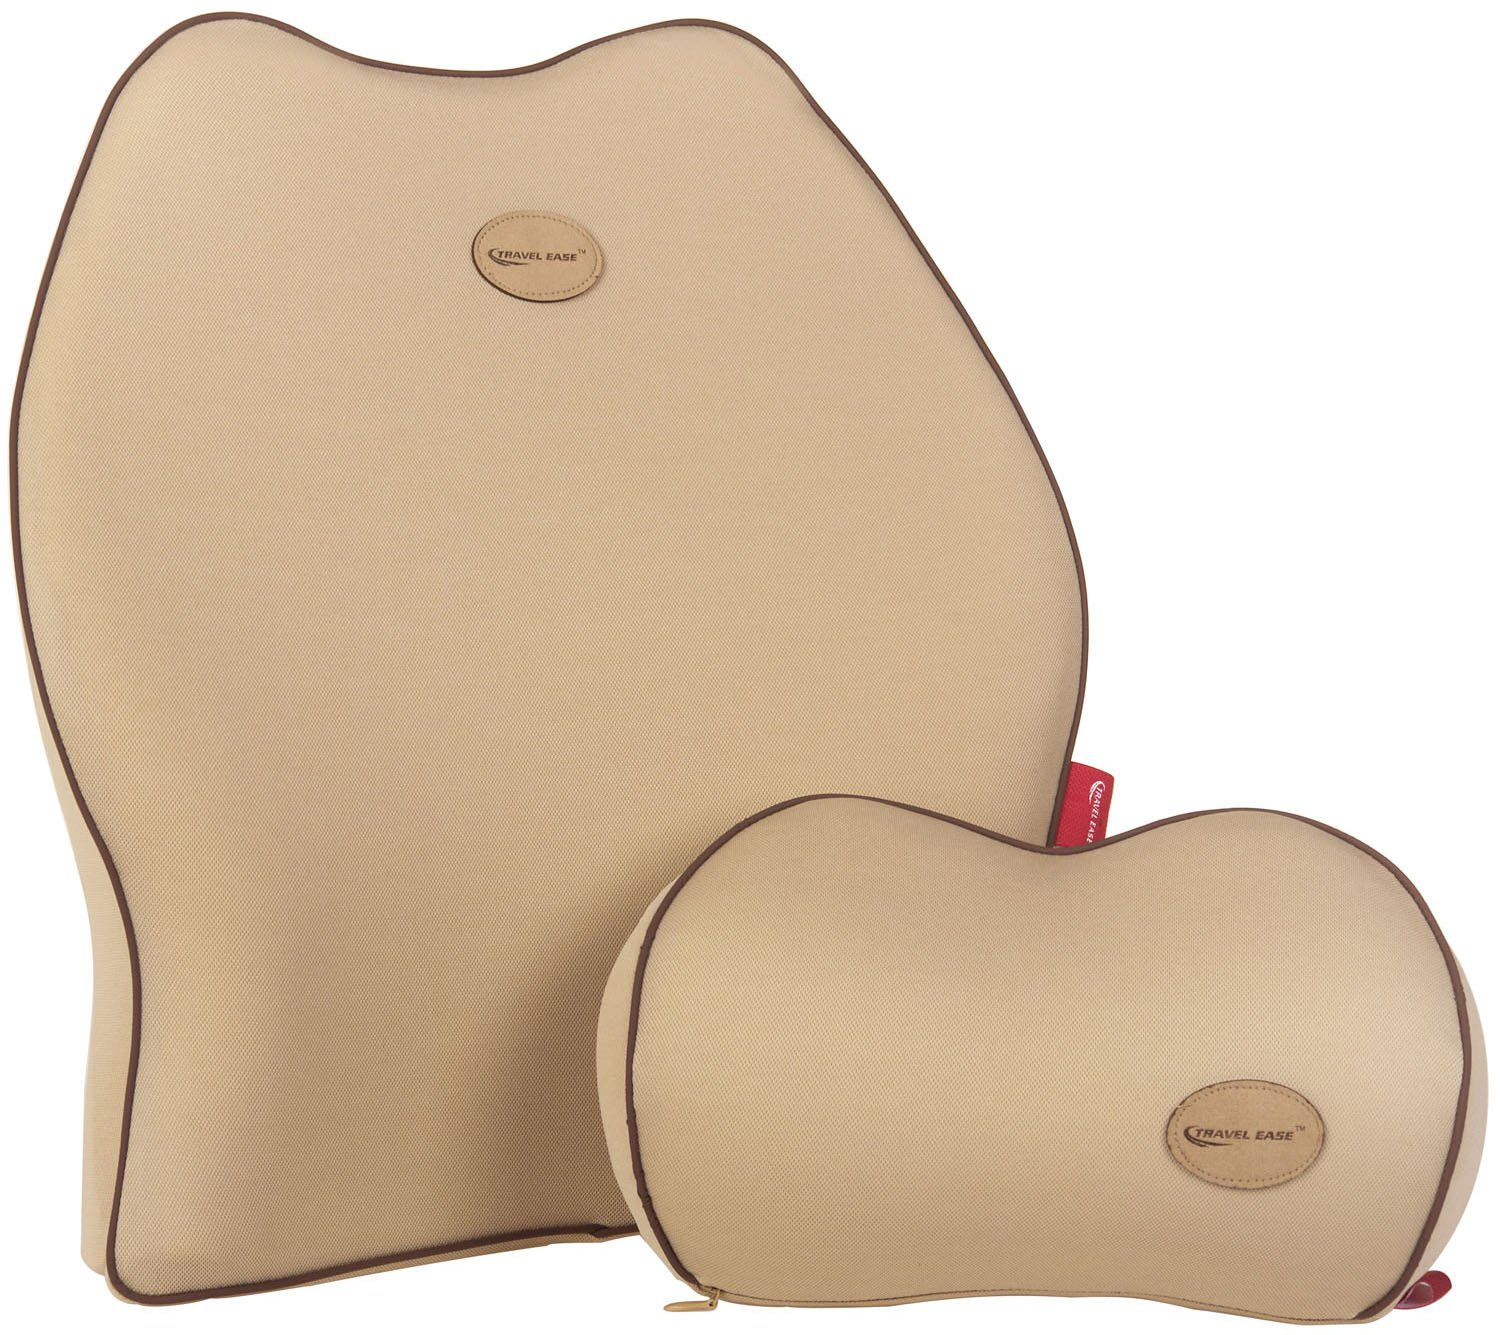 Best Rated Pillow For Neck Problems